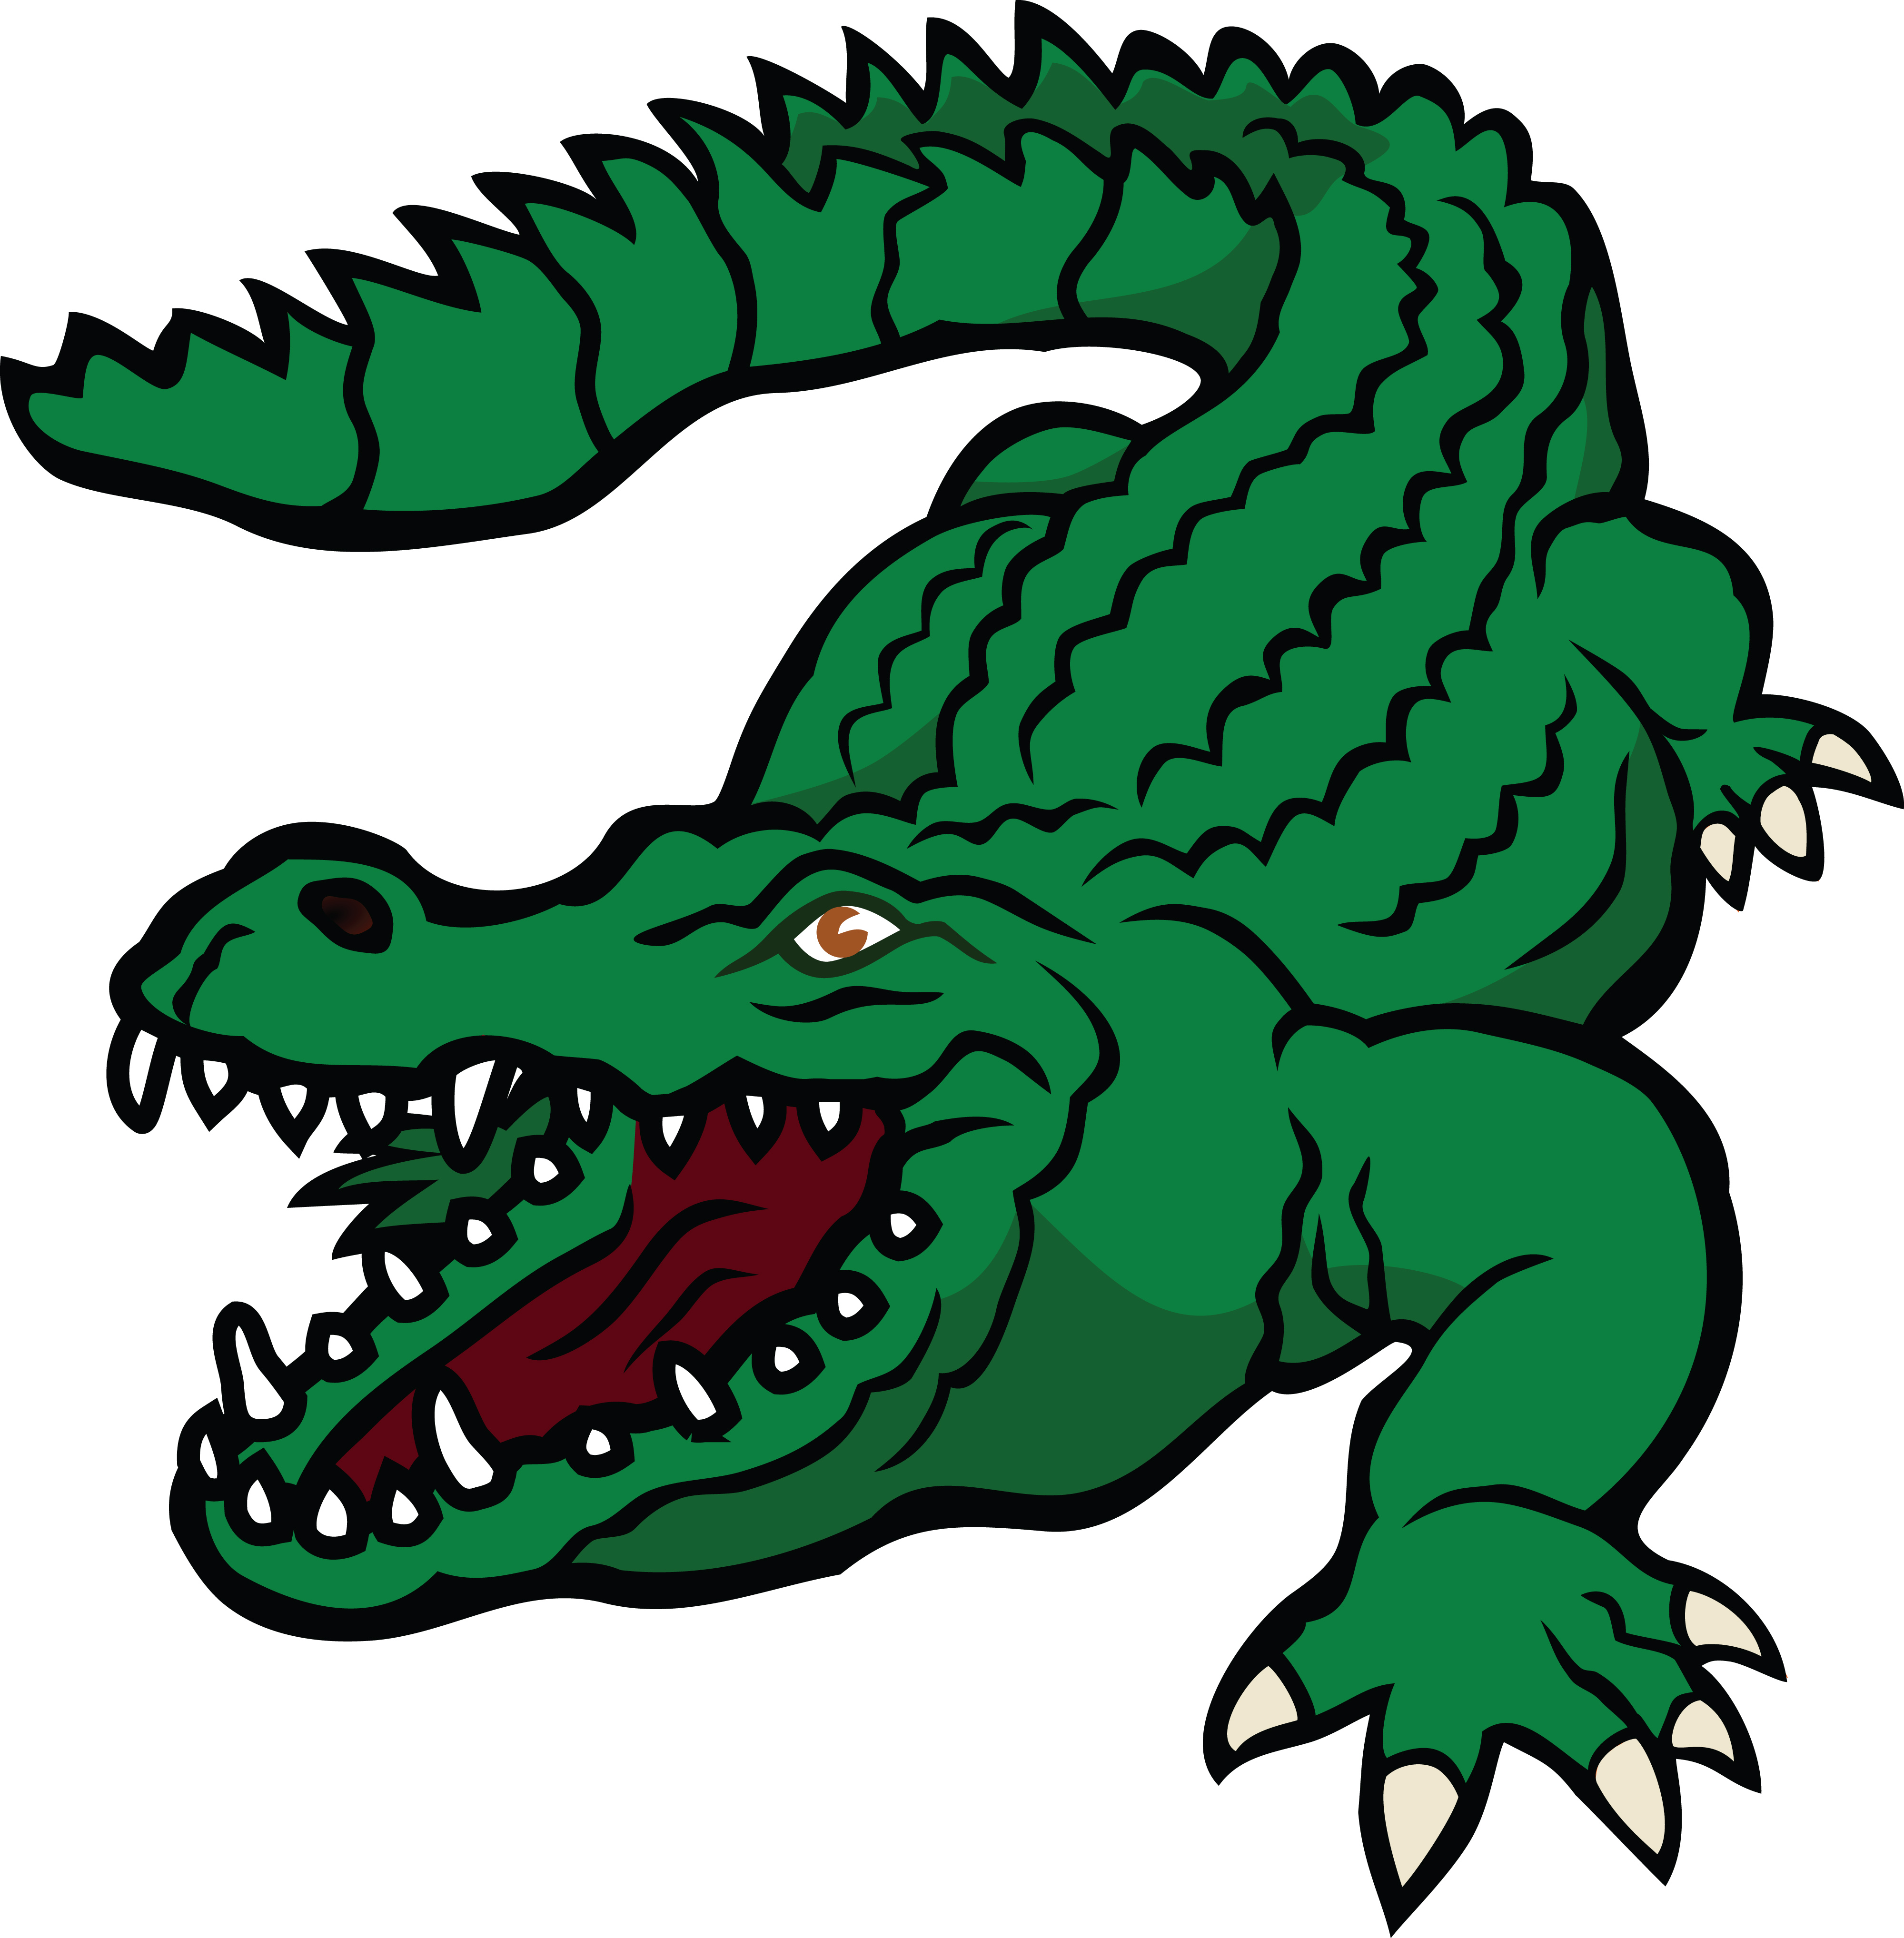 Nile Crocodile Clipart at GetDrawings.com.